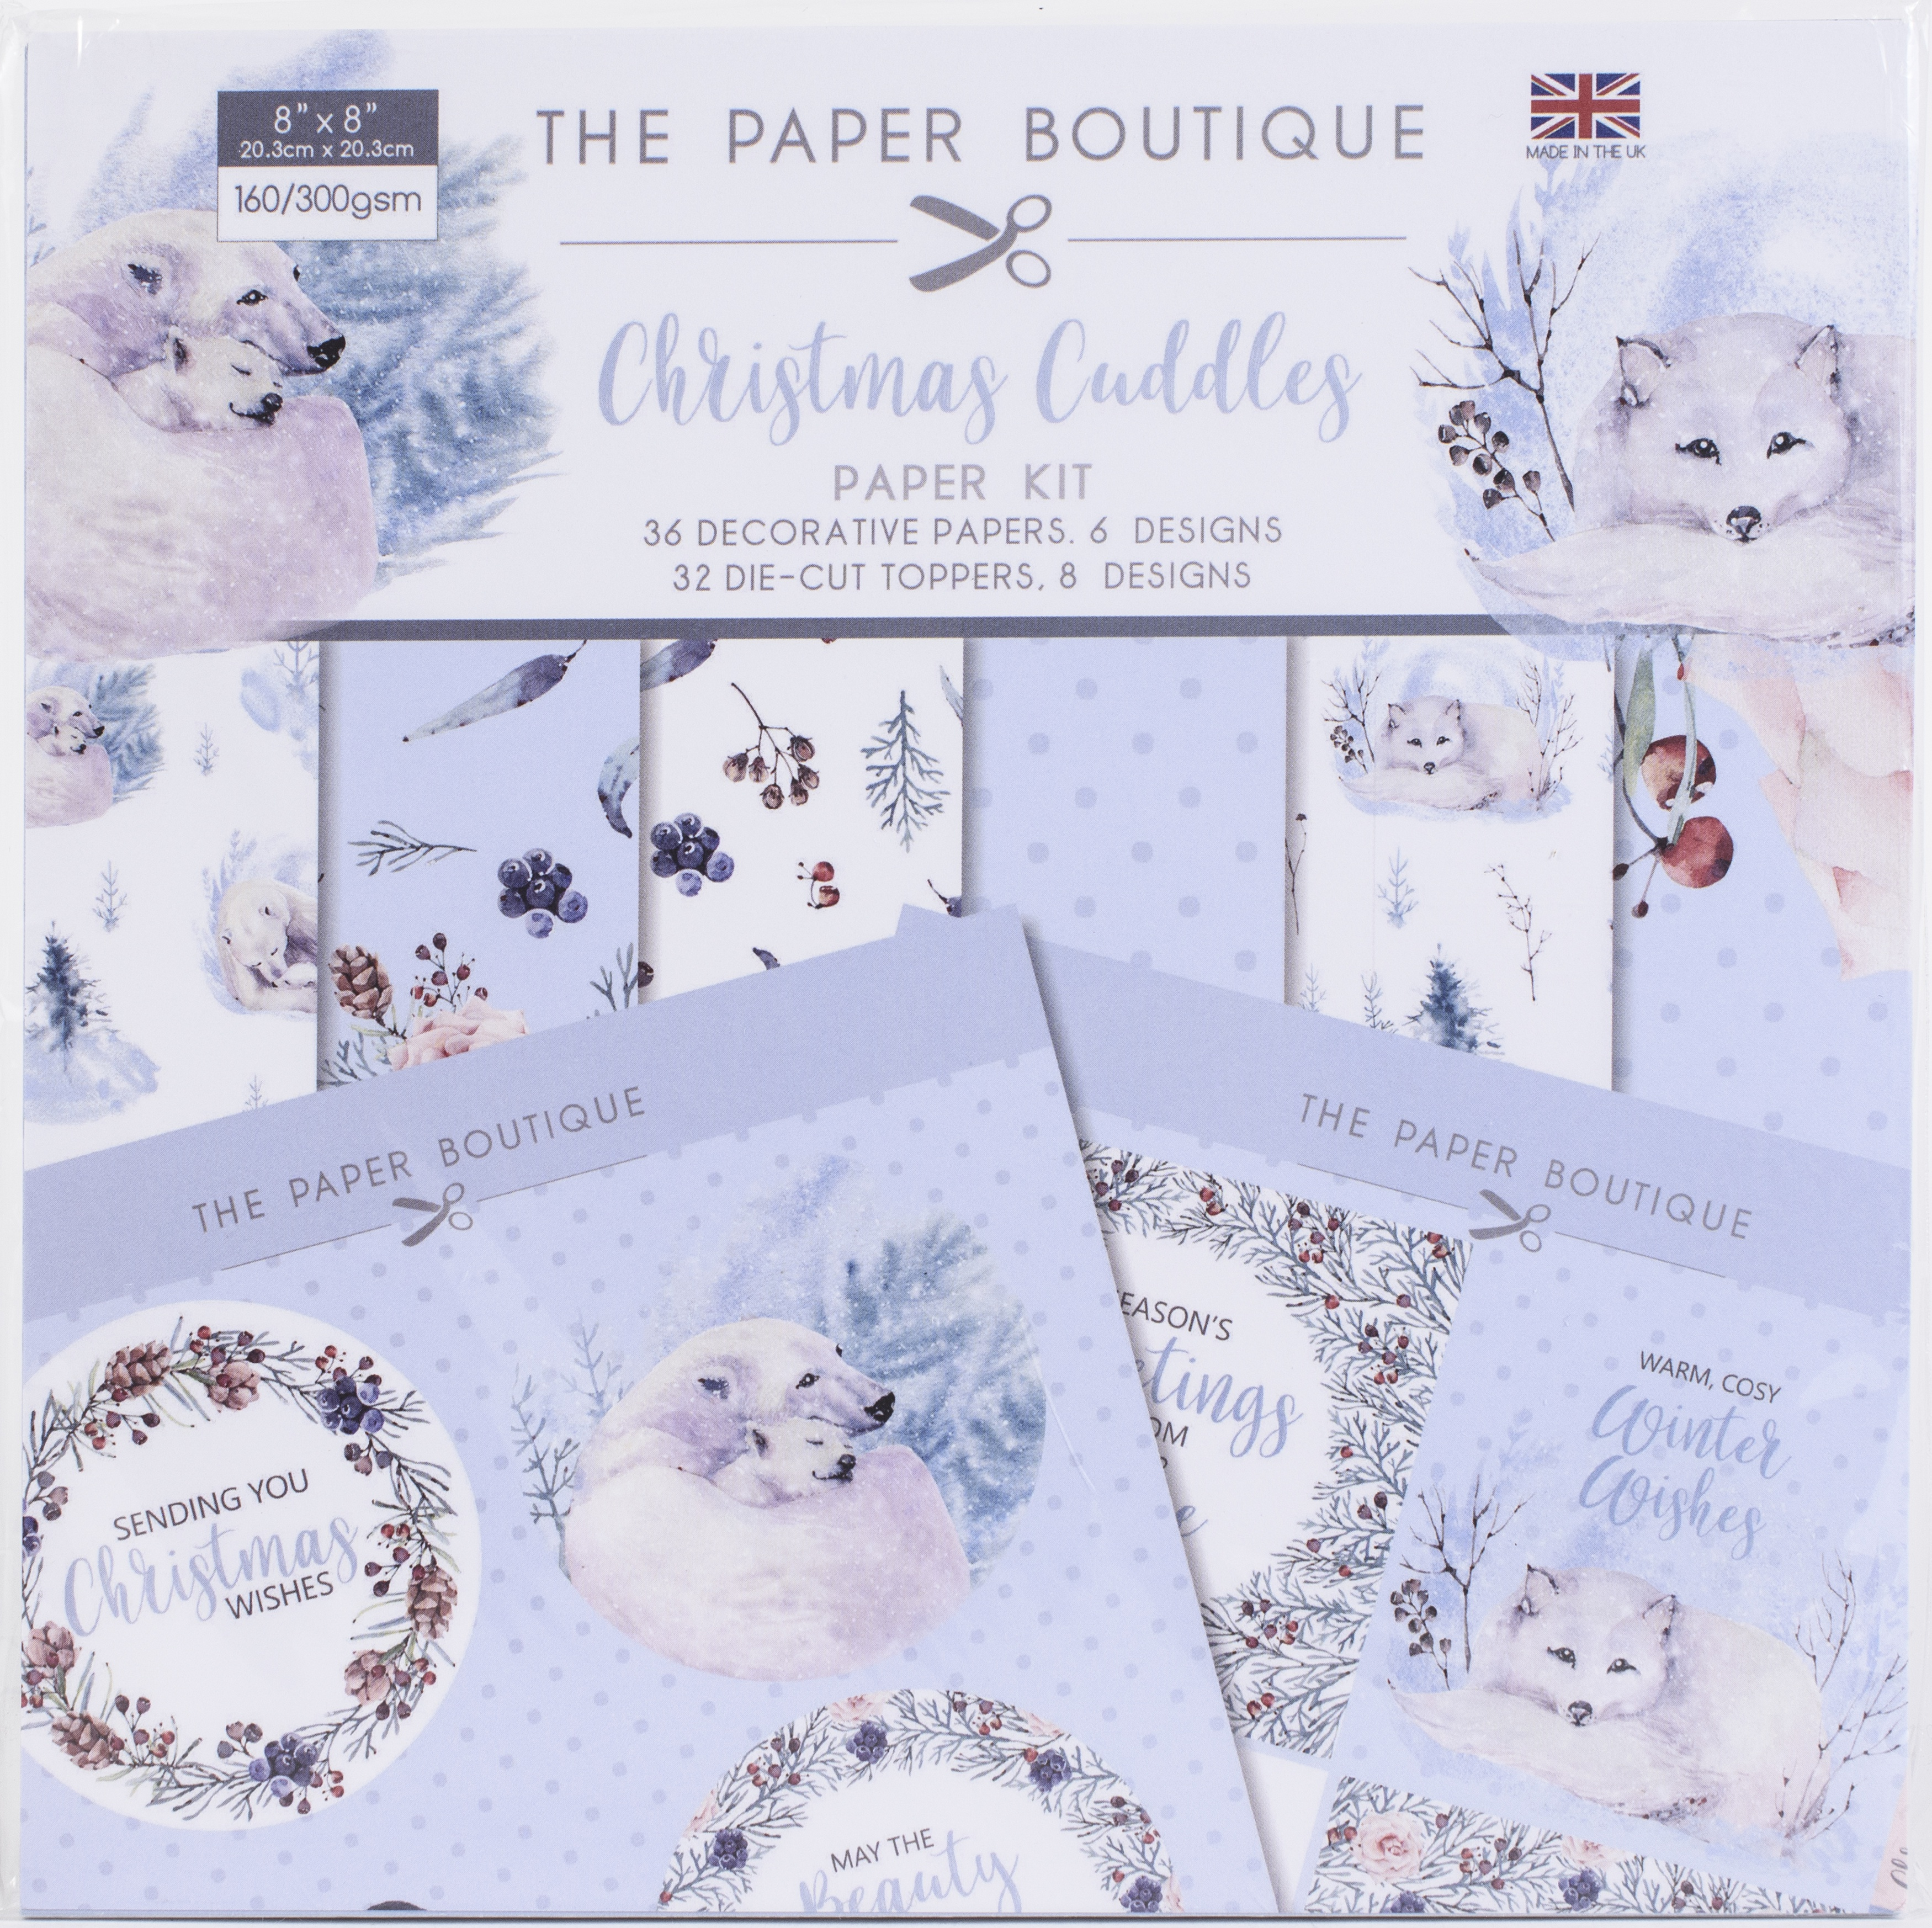 THE PAPER BOUTIQUE 8X8 PAD: PAPER KIT- CHRISTMAS CUDDLES